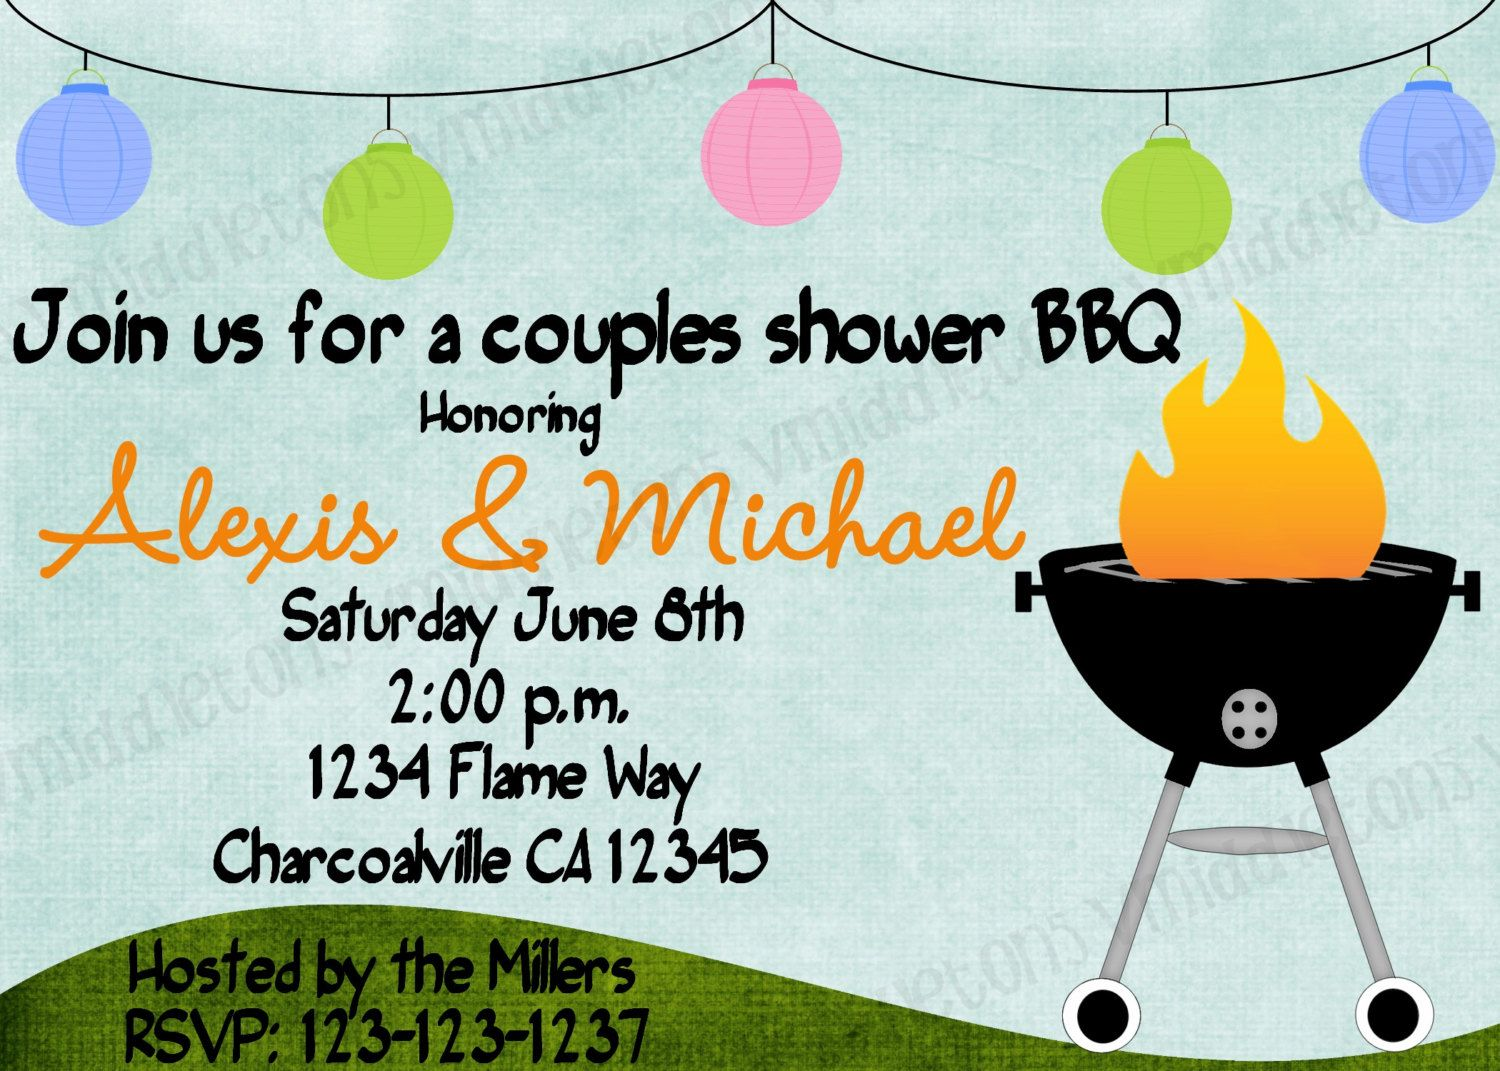 couples bridal wedding shower bbq cookout by vmiddleton5